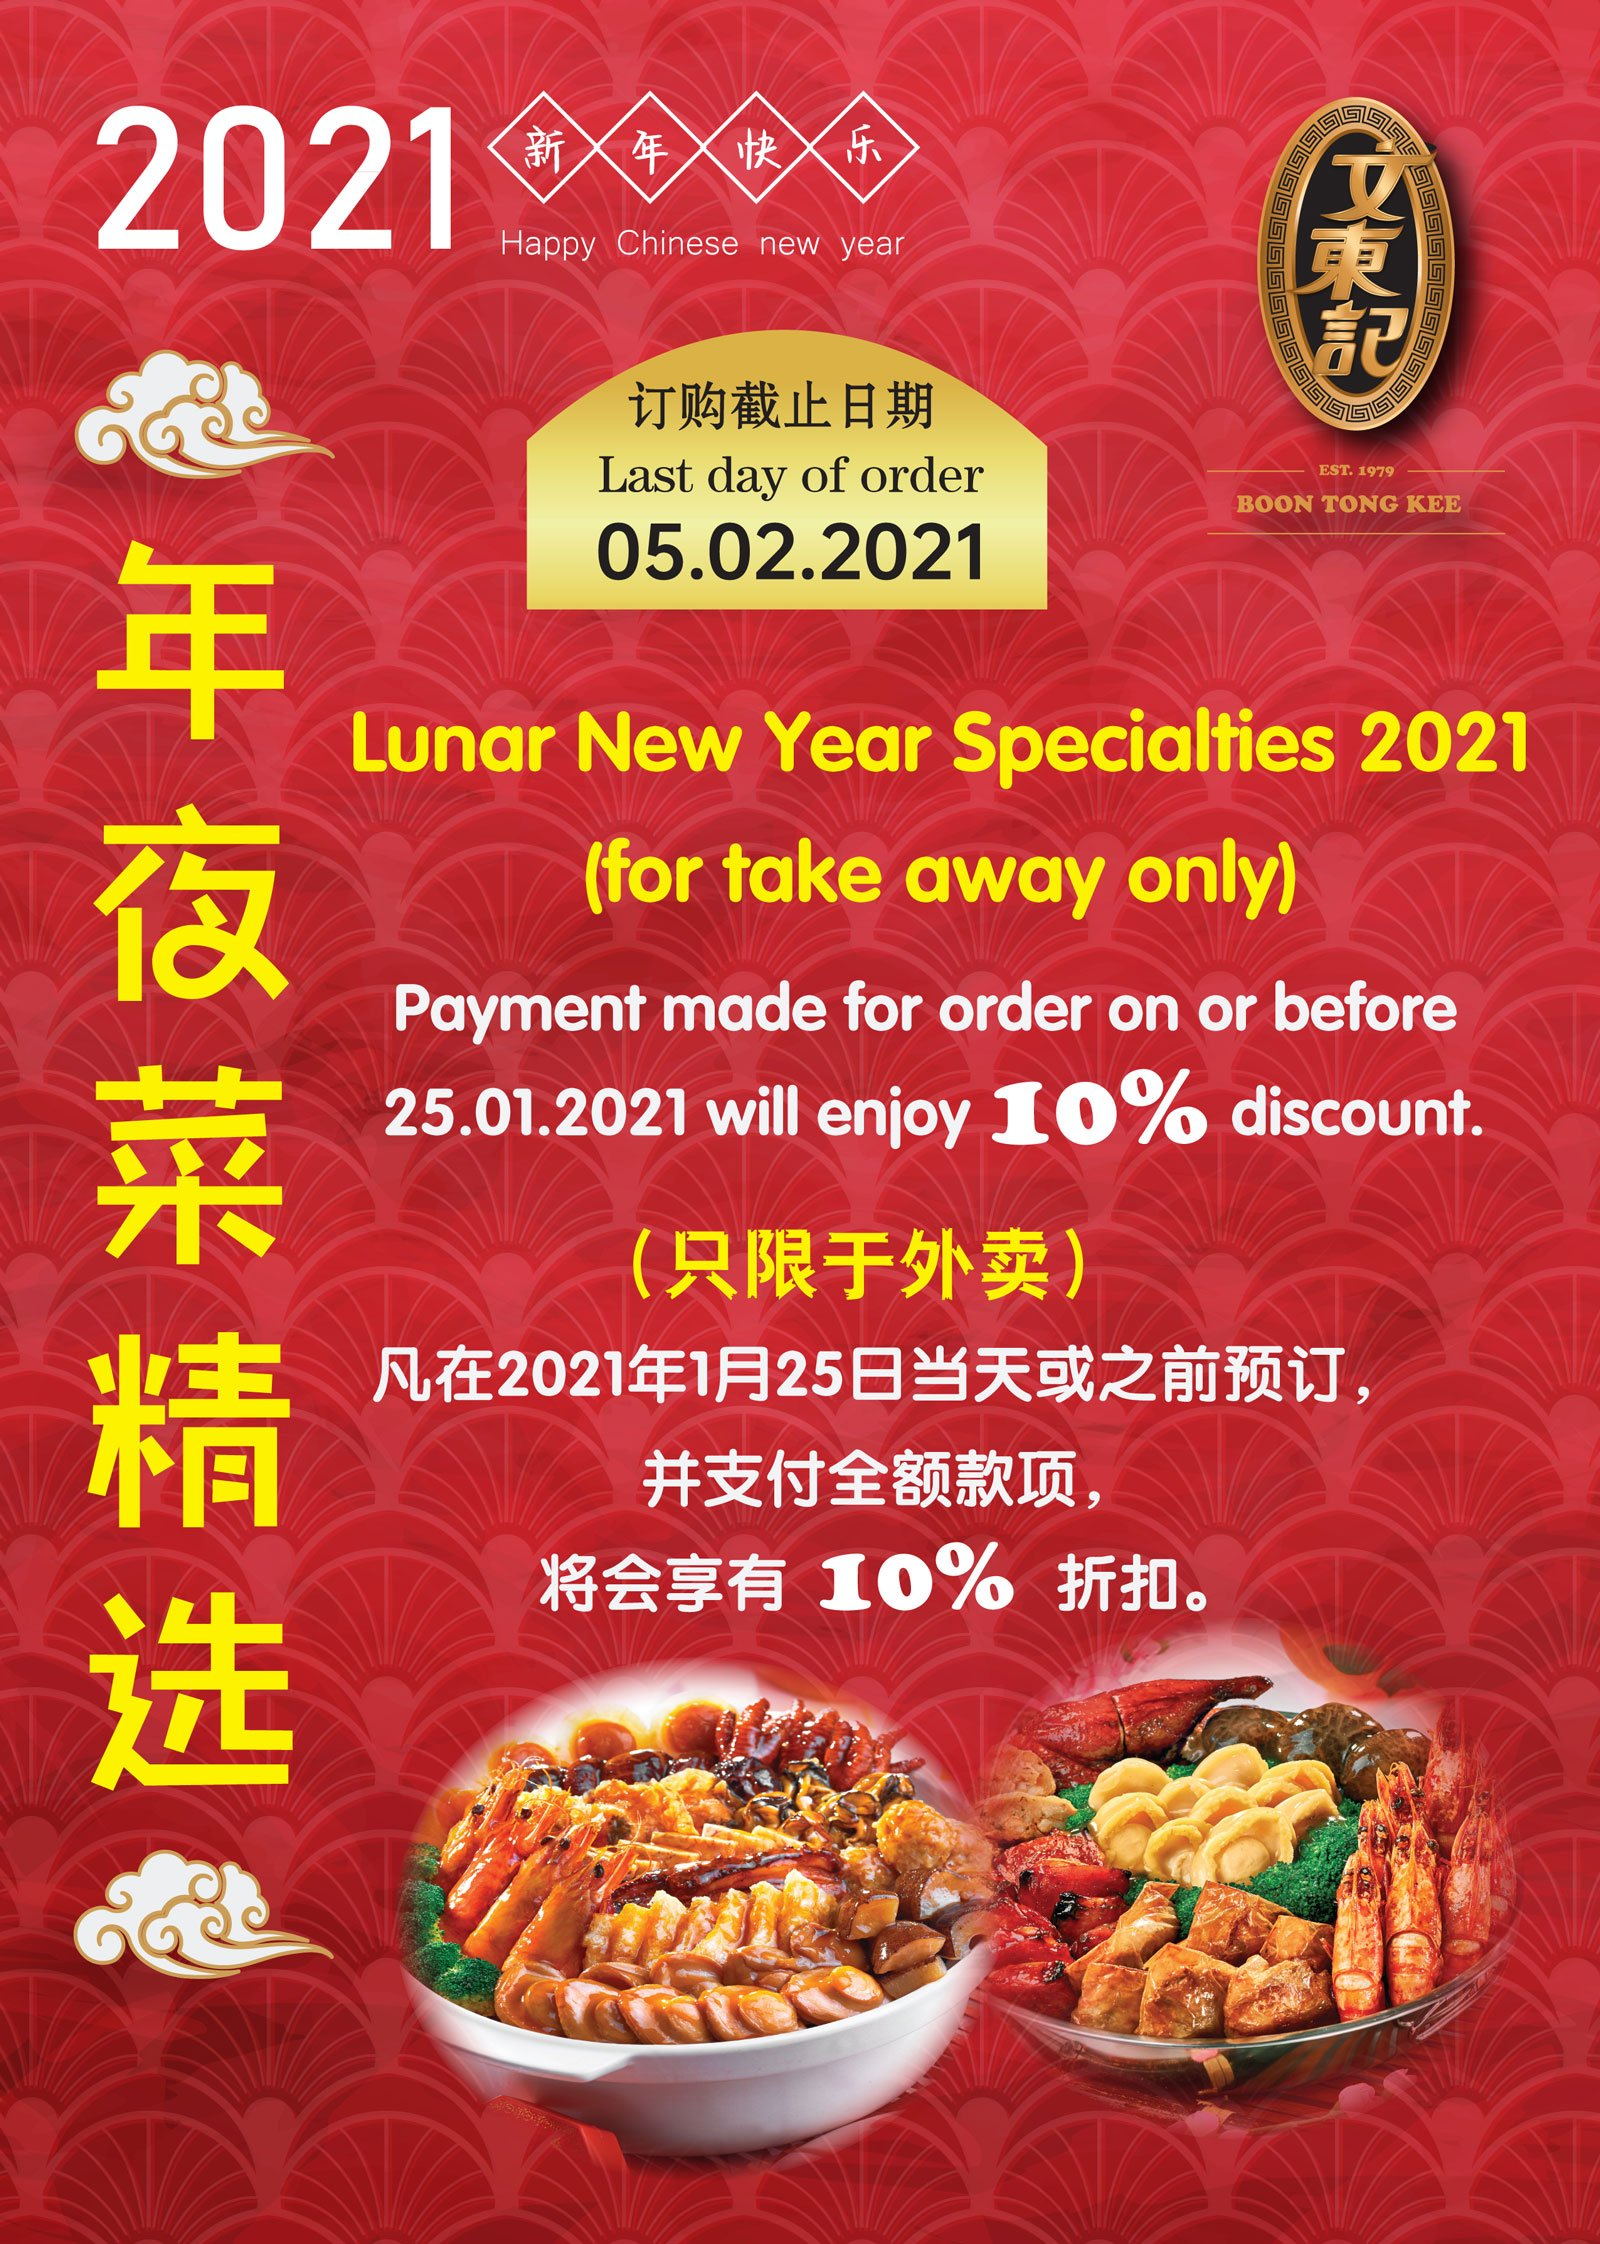 Lunar New Year Specialities 2021 ( For take away only)